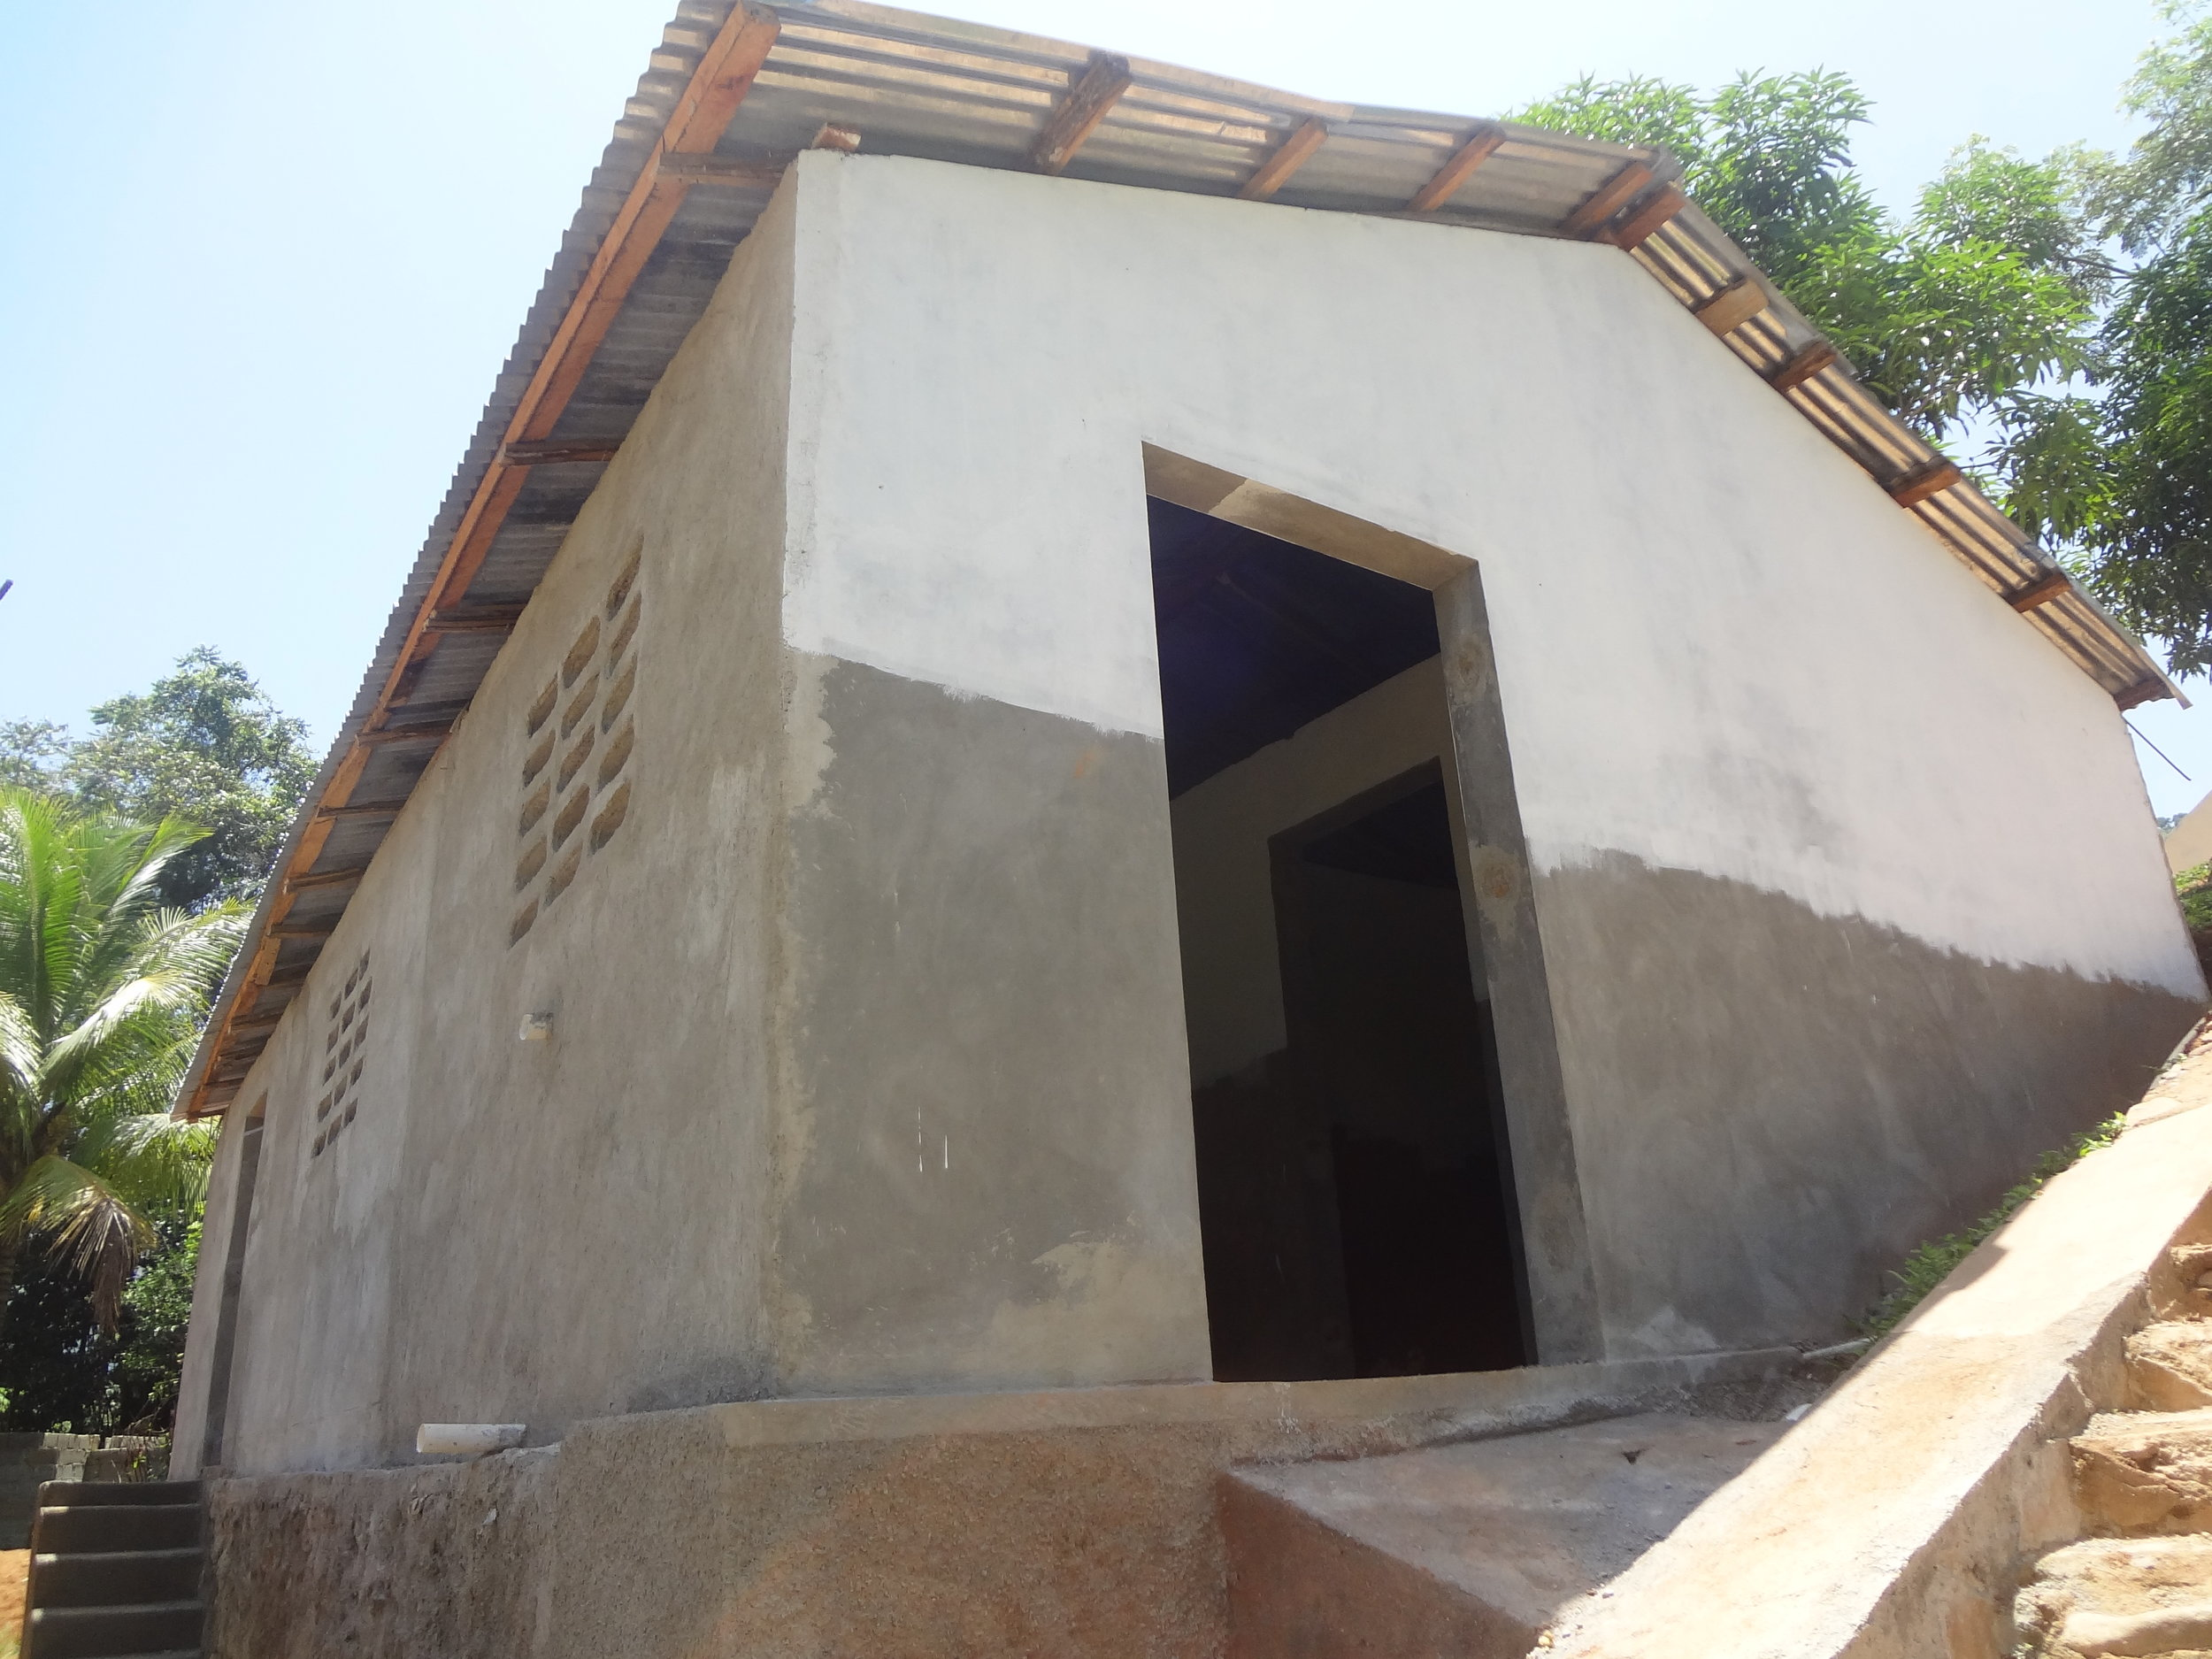 The permanent health facility that GROW constructed at La Soufriere in collaboration with the Haitian Ministry of Public Health and Population.